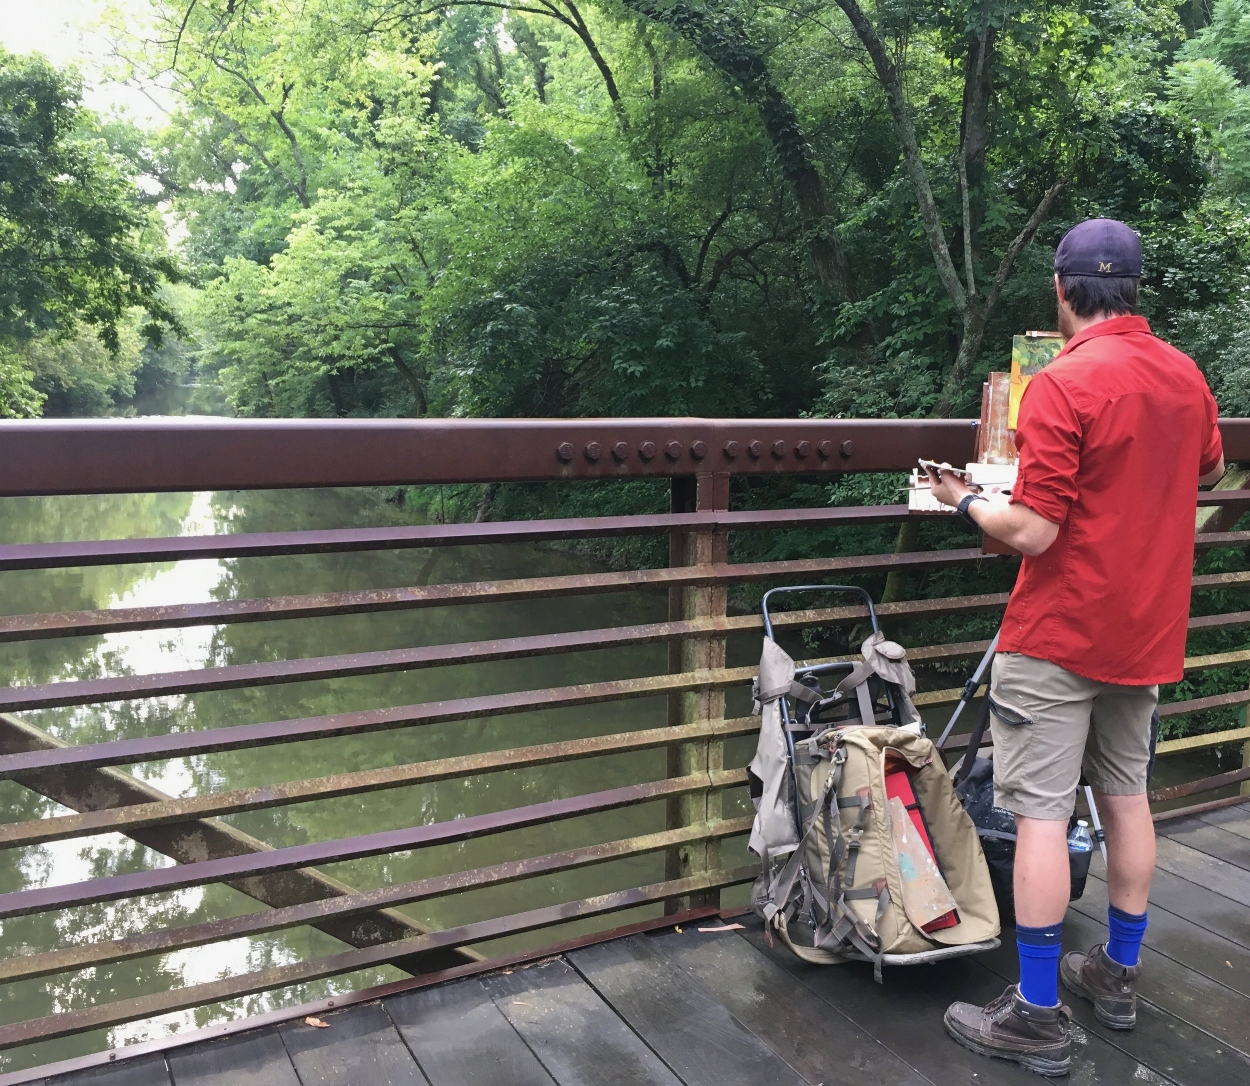 Plein air artist painting at Whites Creek Greenway.